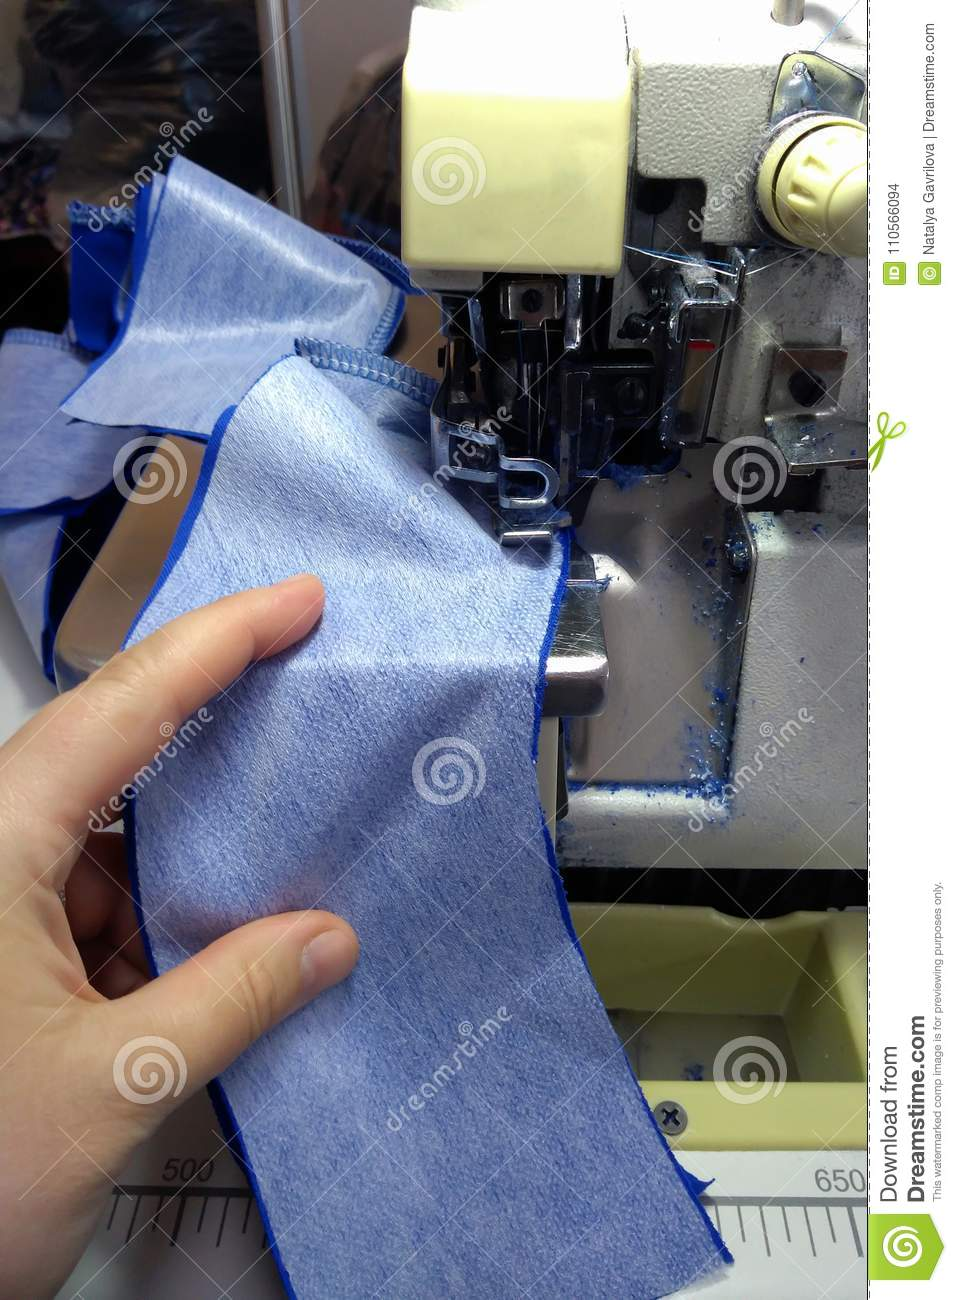 Sewing machine, clothing manufacture,